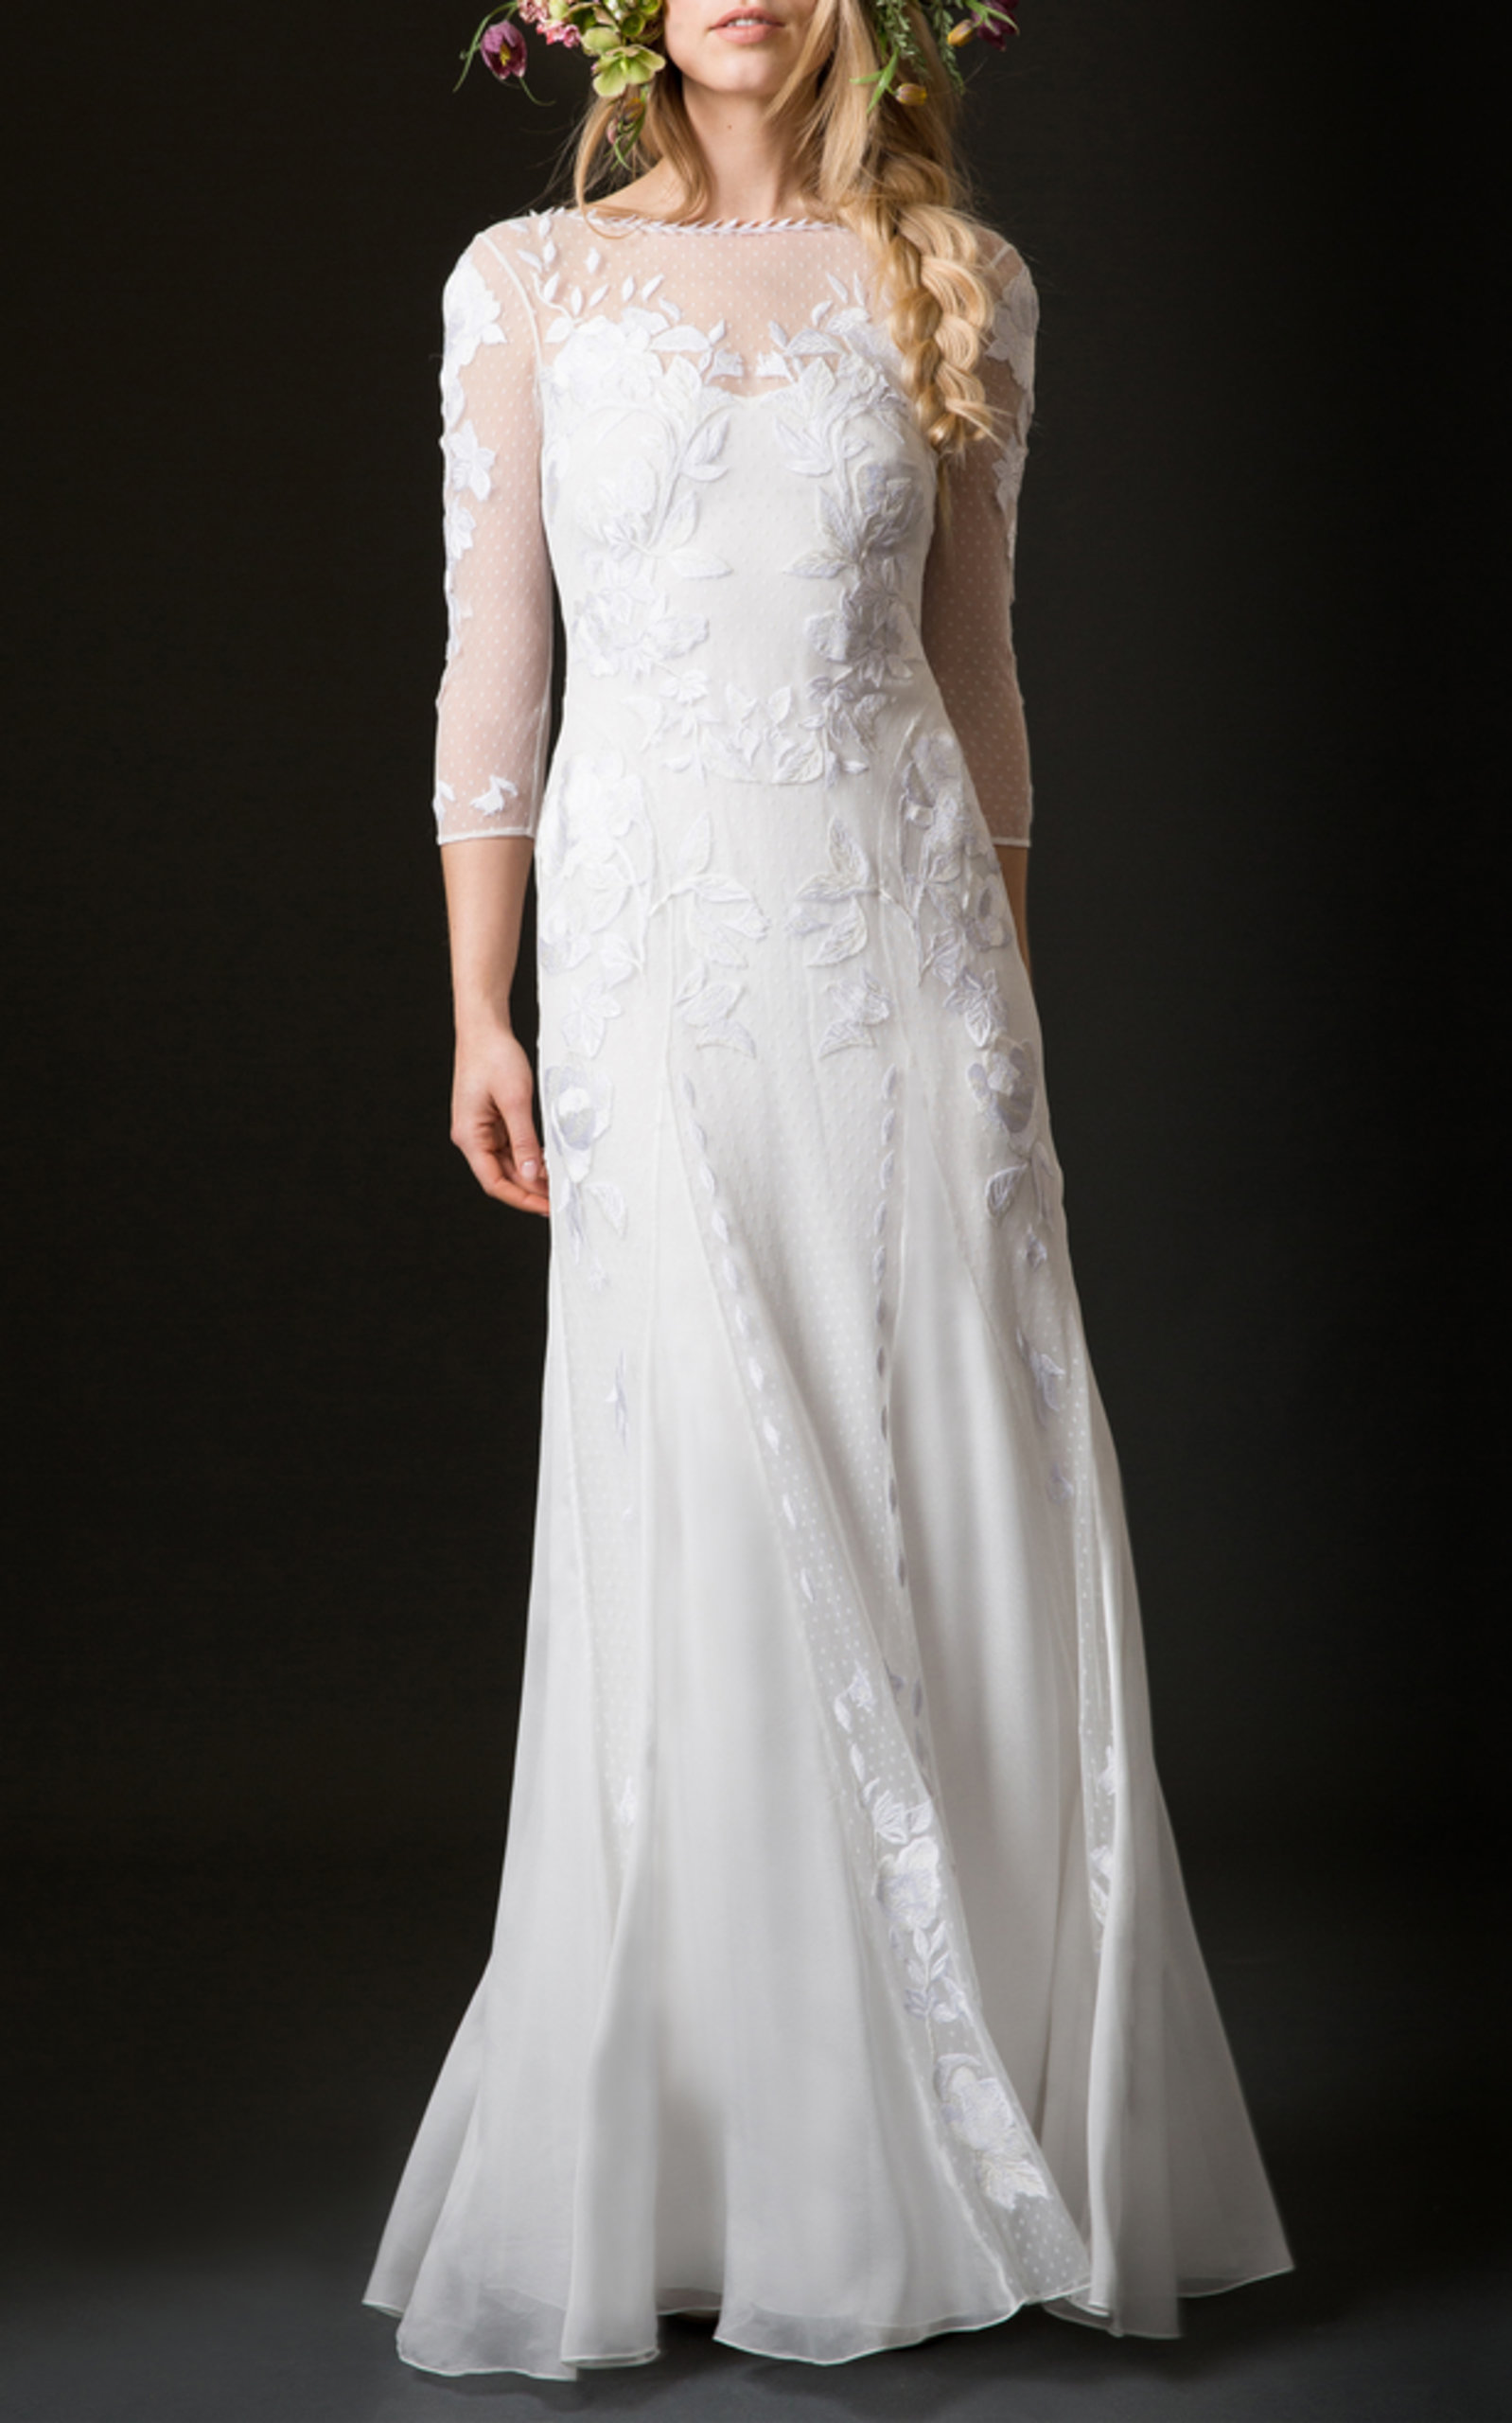 TEMPERLEY LONDON BRIDAL AUBREY SHEATH DRESS